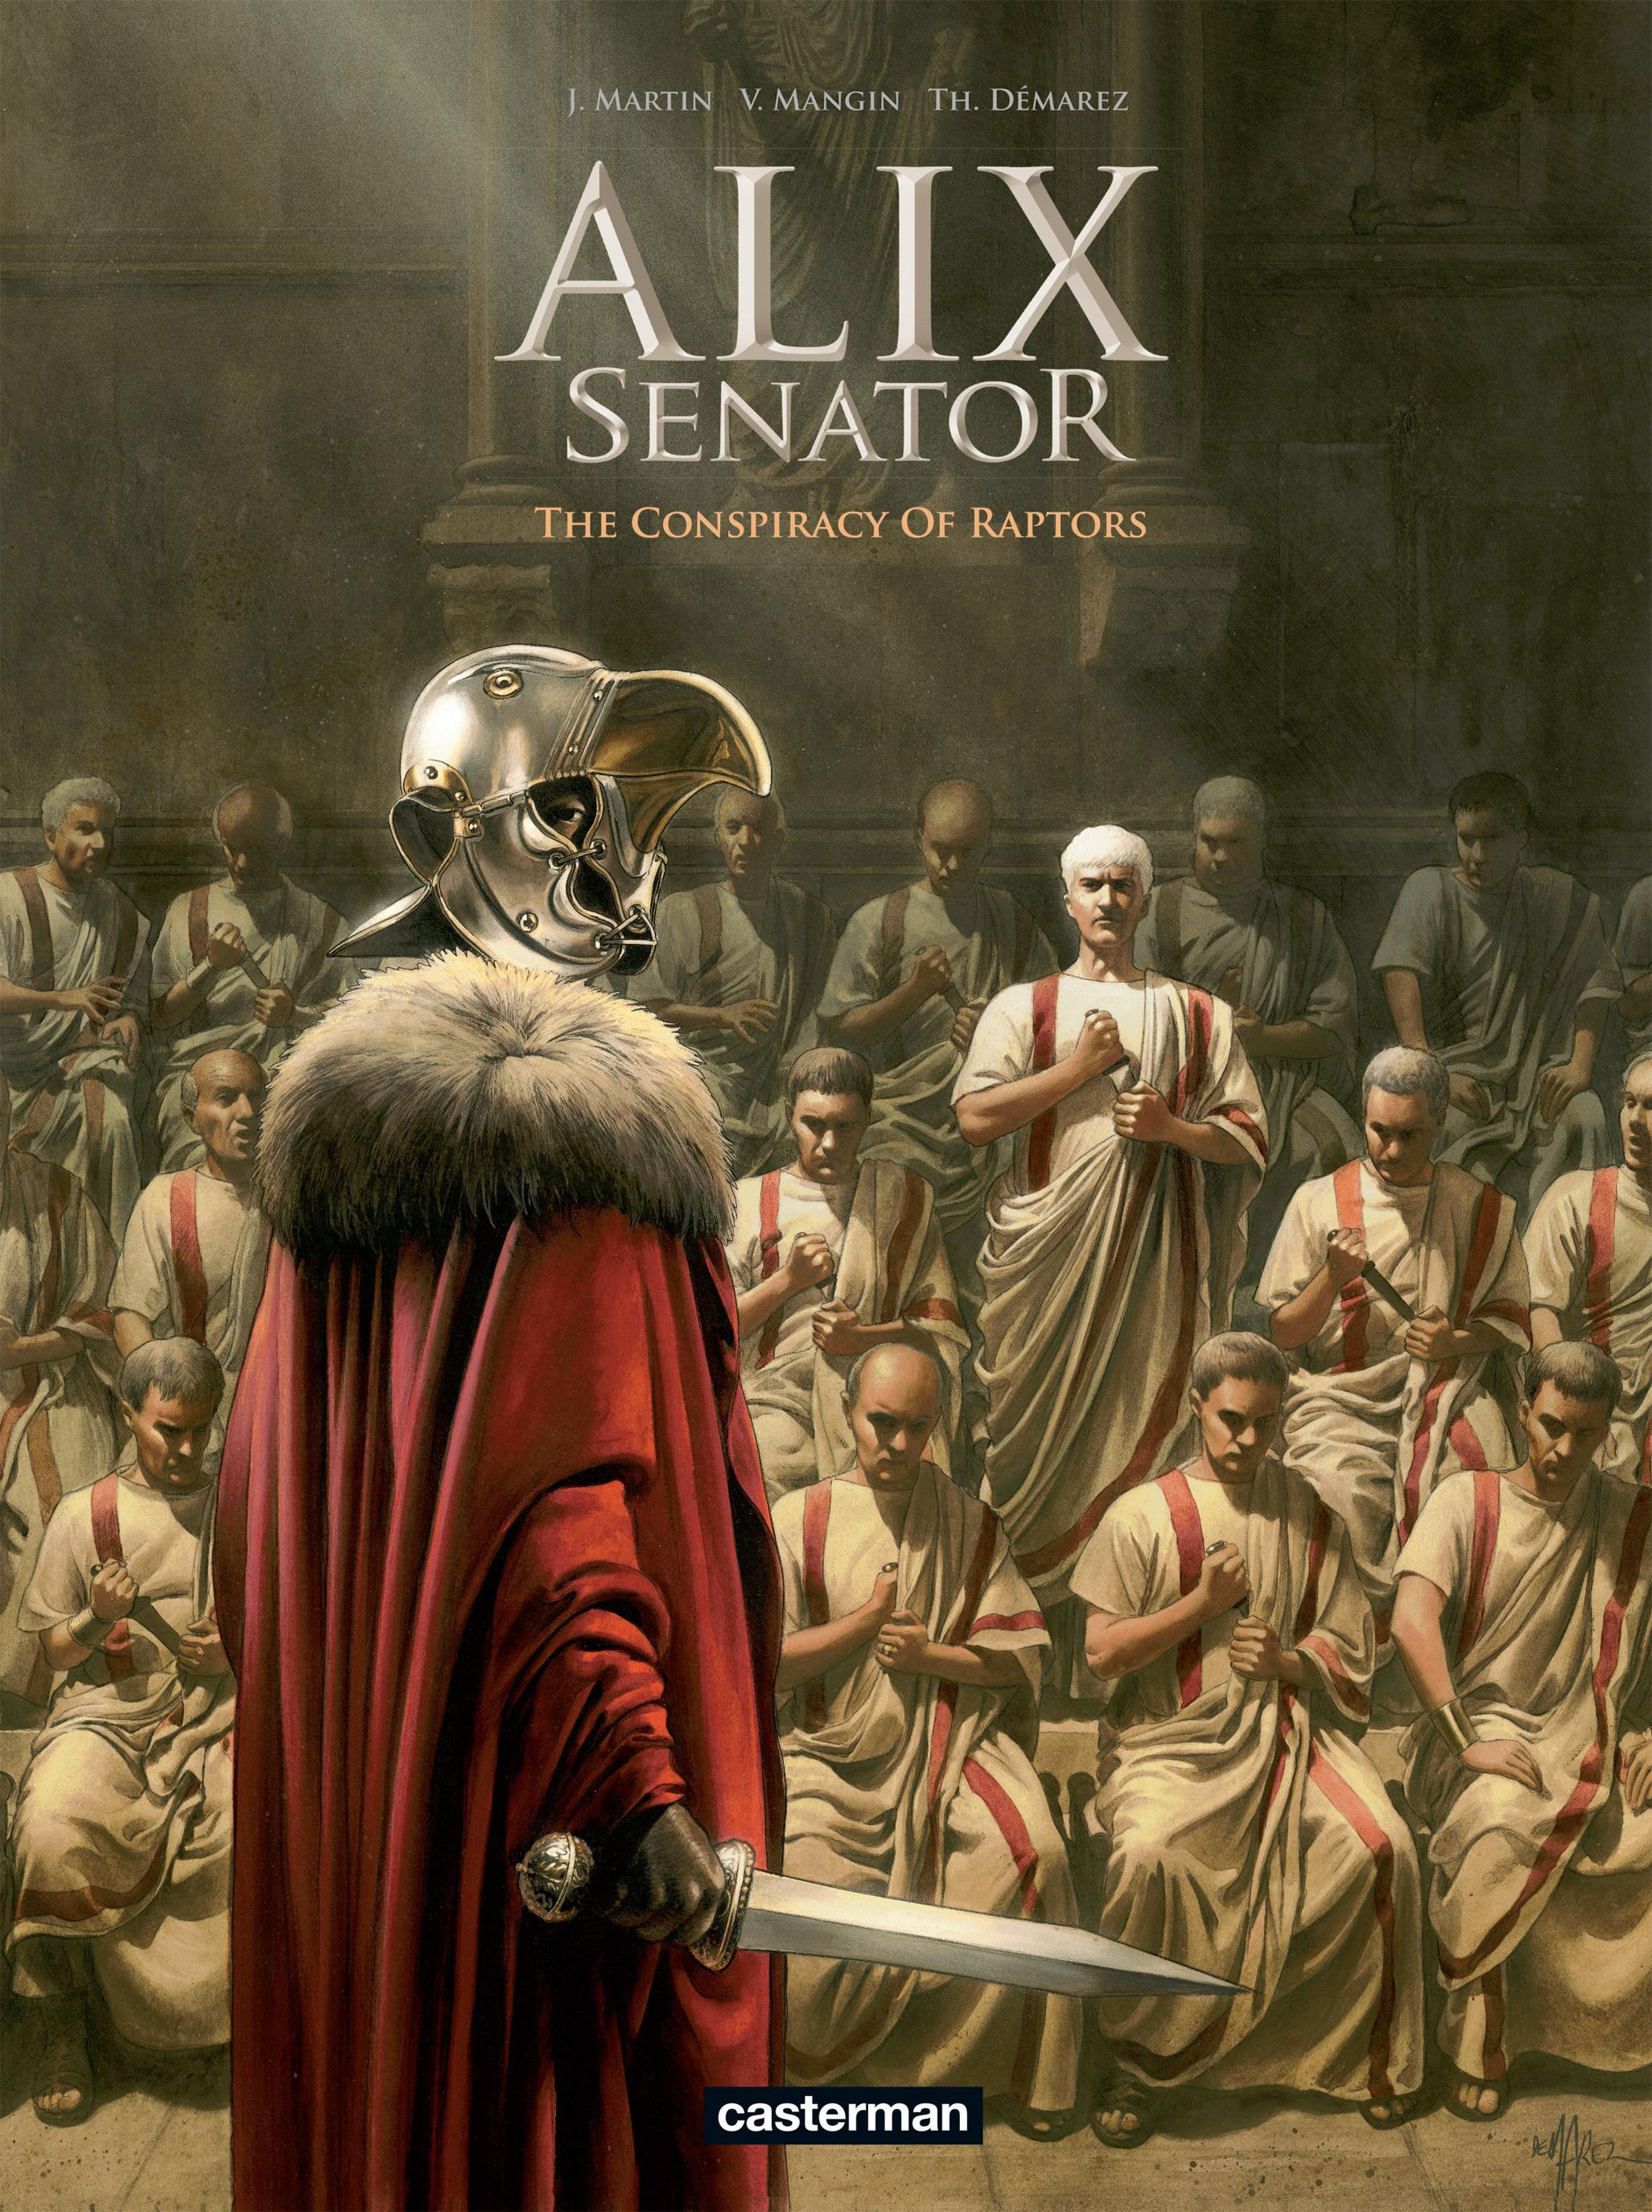 Alix Senator 03-The Conspiracy Of Raptors 2014 Scanlation phillywilly